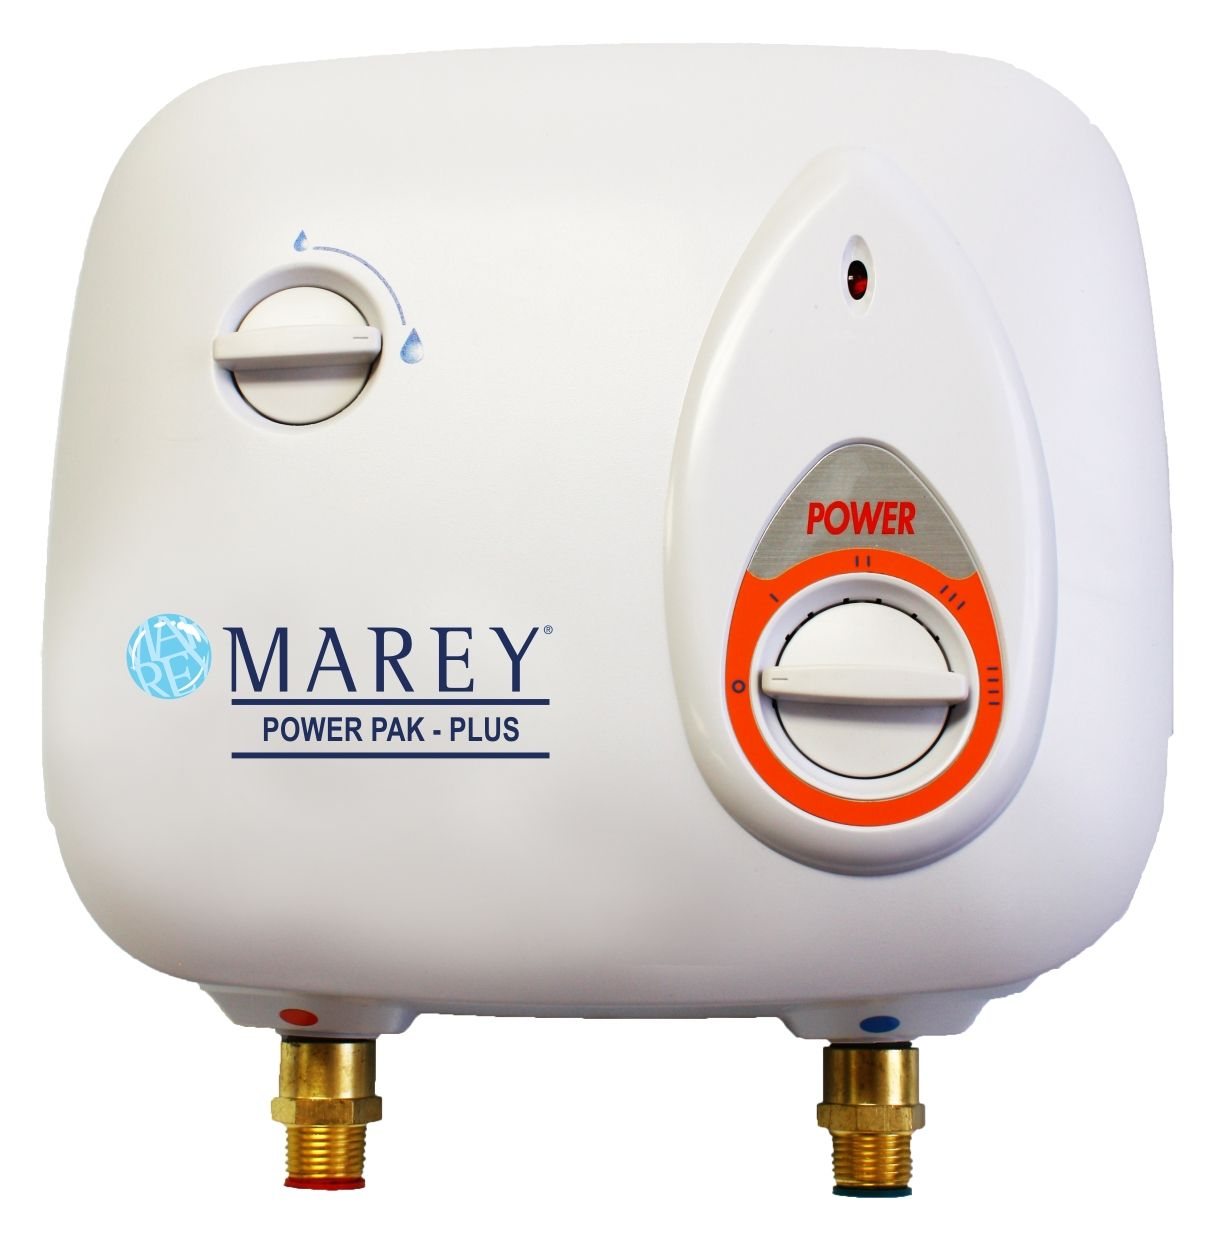 Marey Heater Corp Products Tankless Electric Water Heater Power Pak Plus 110v Electric Water Heater Tankless Water Heater Water Heater